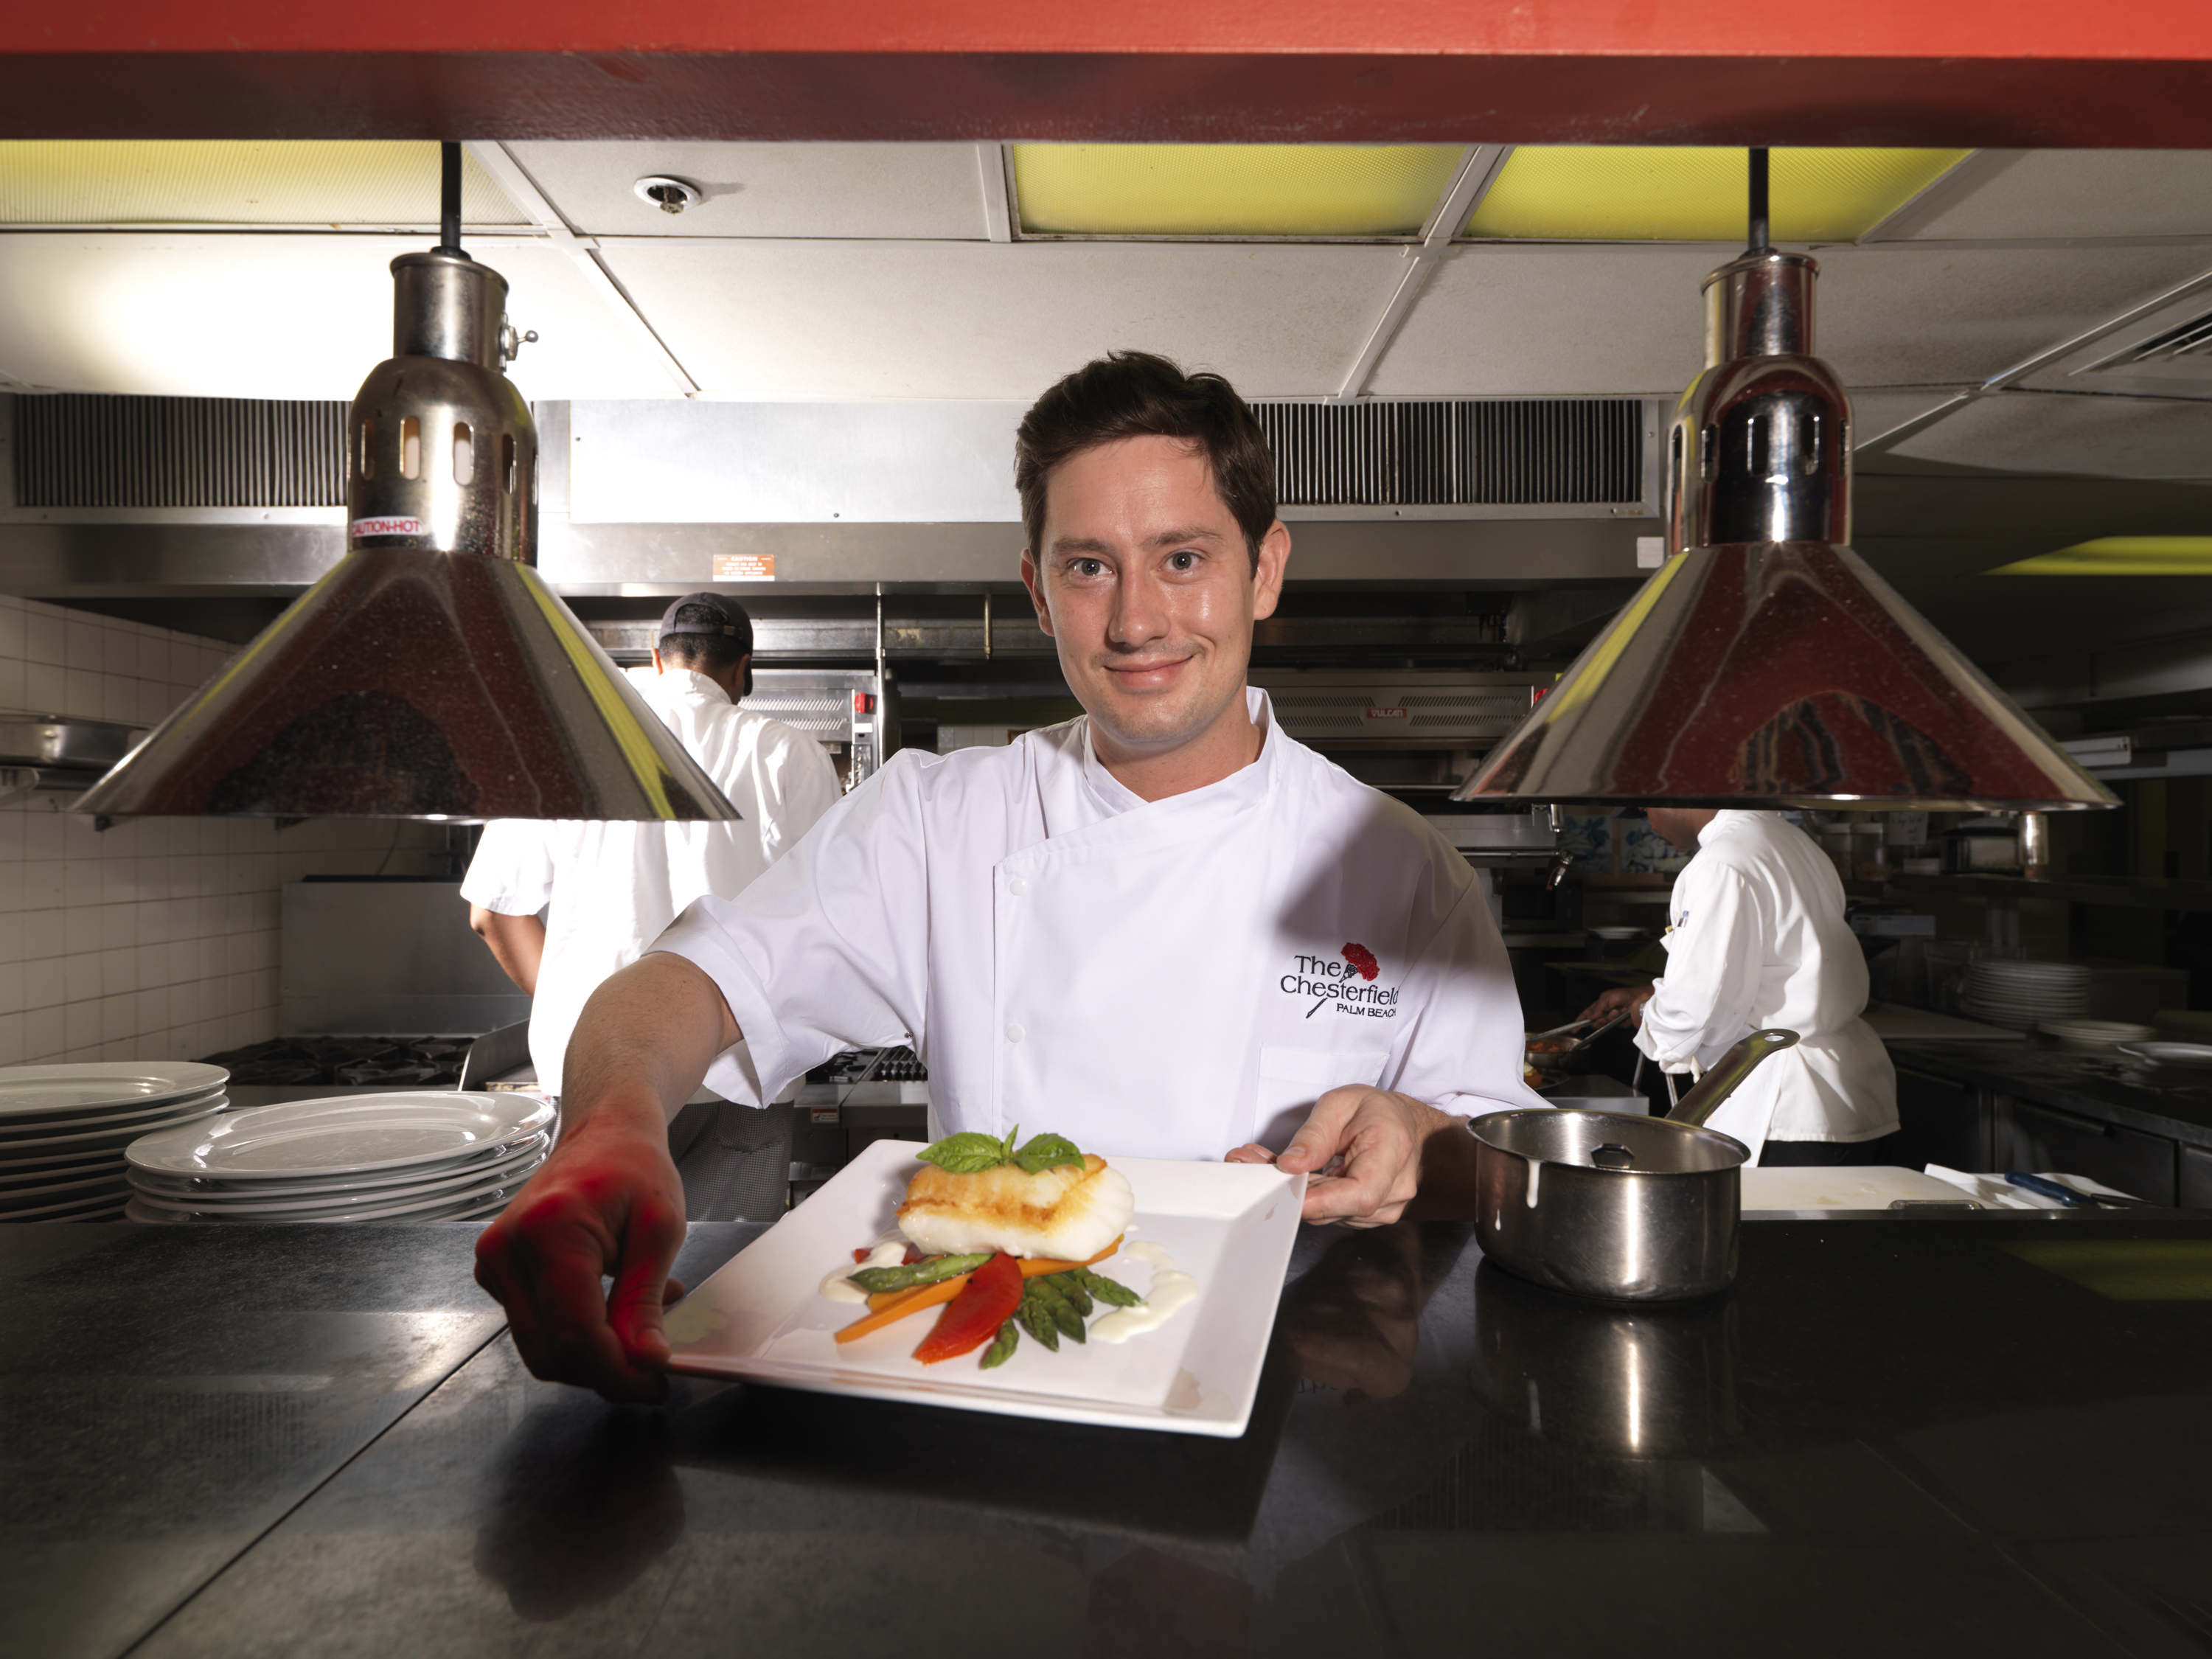 Executive Chef Gerard Coughlin, The Chesterfield Palm Beach (USA)